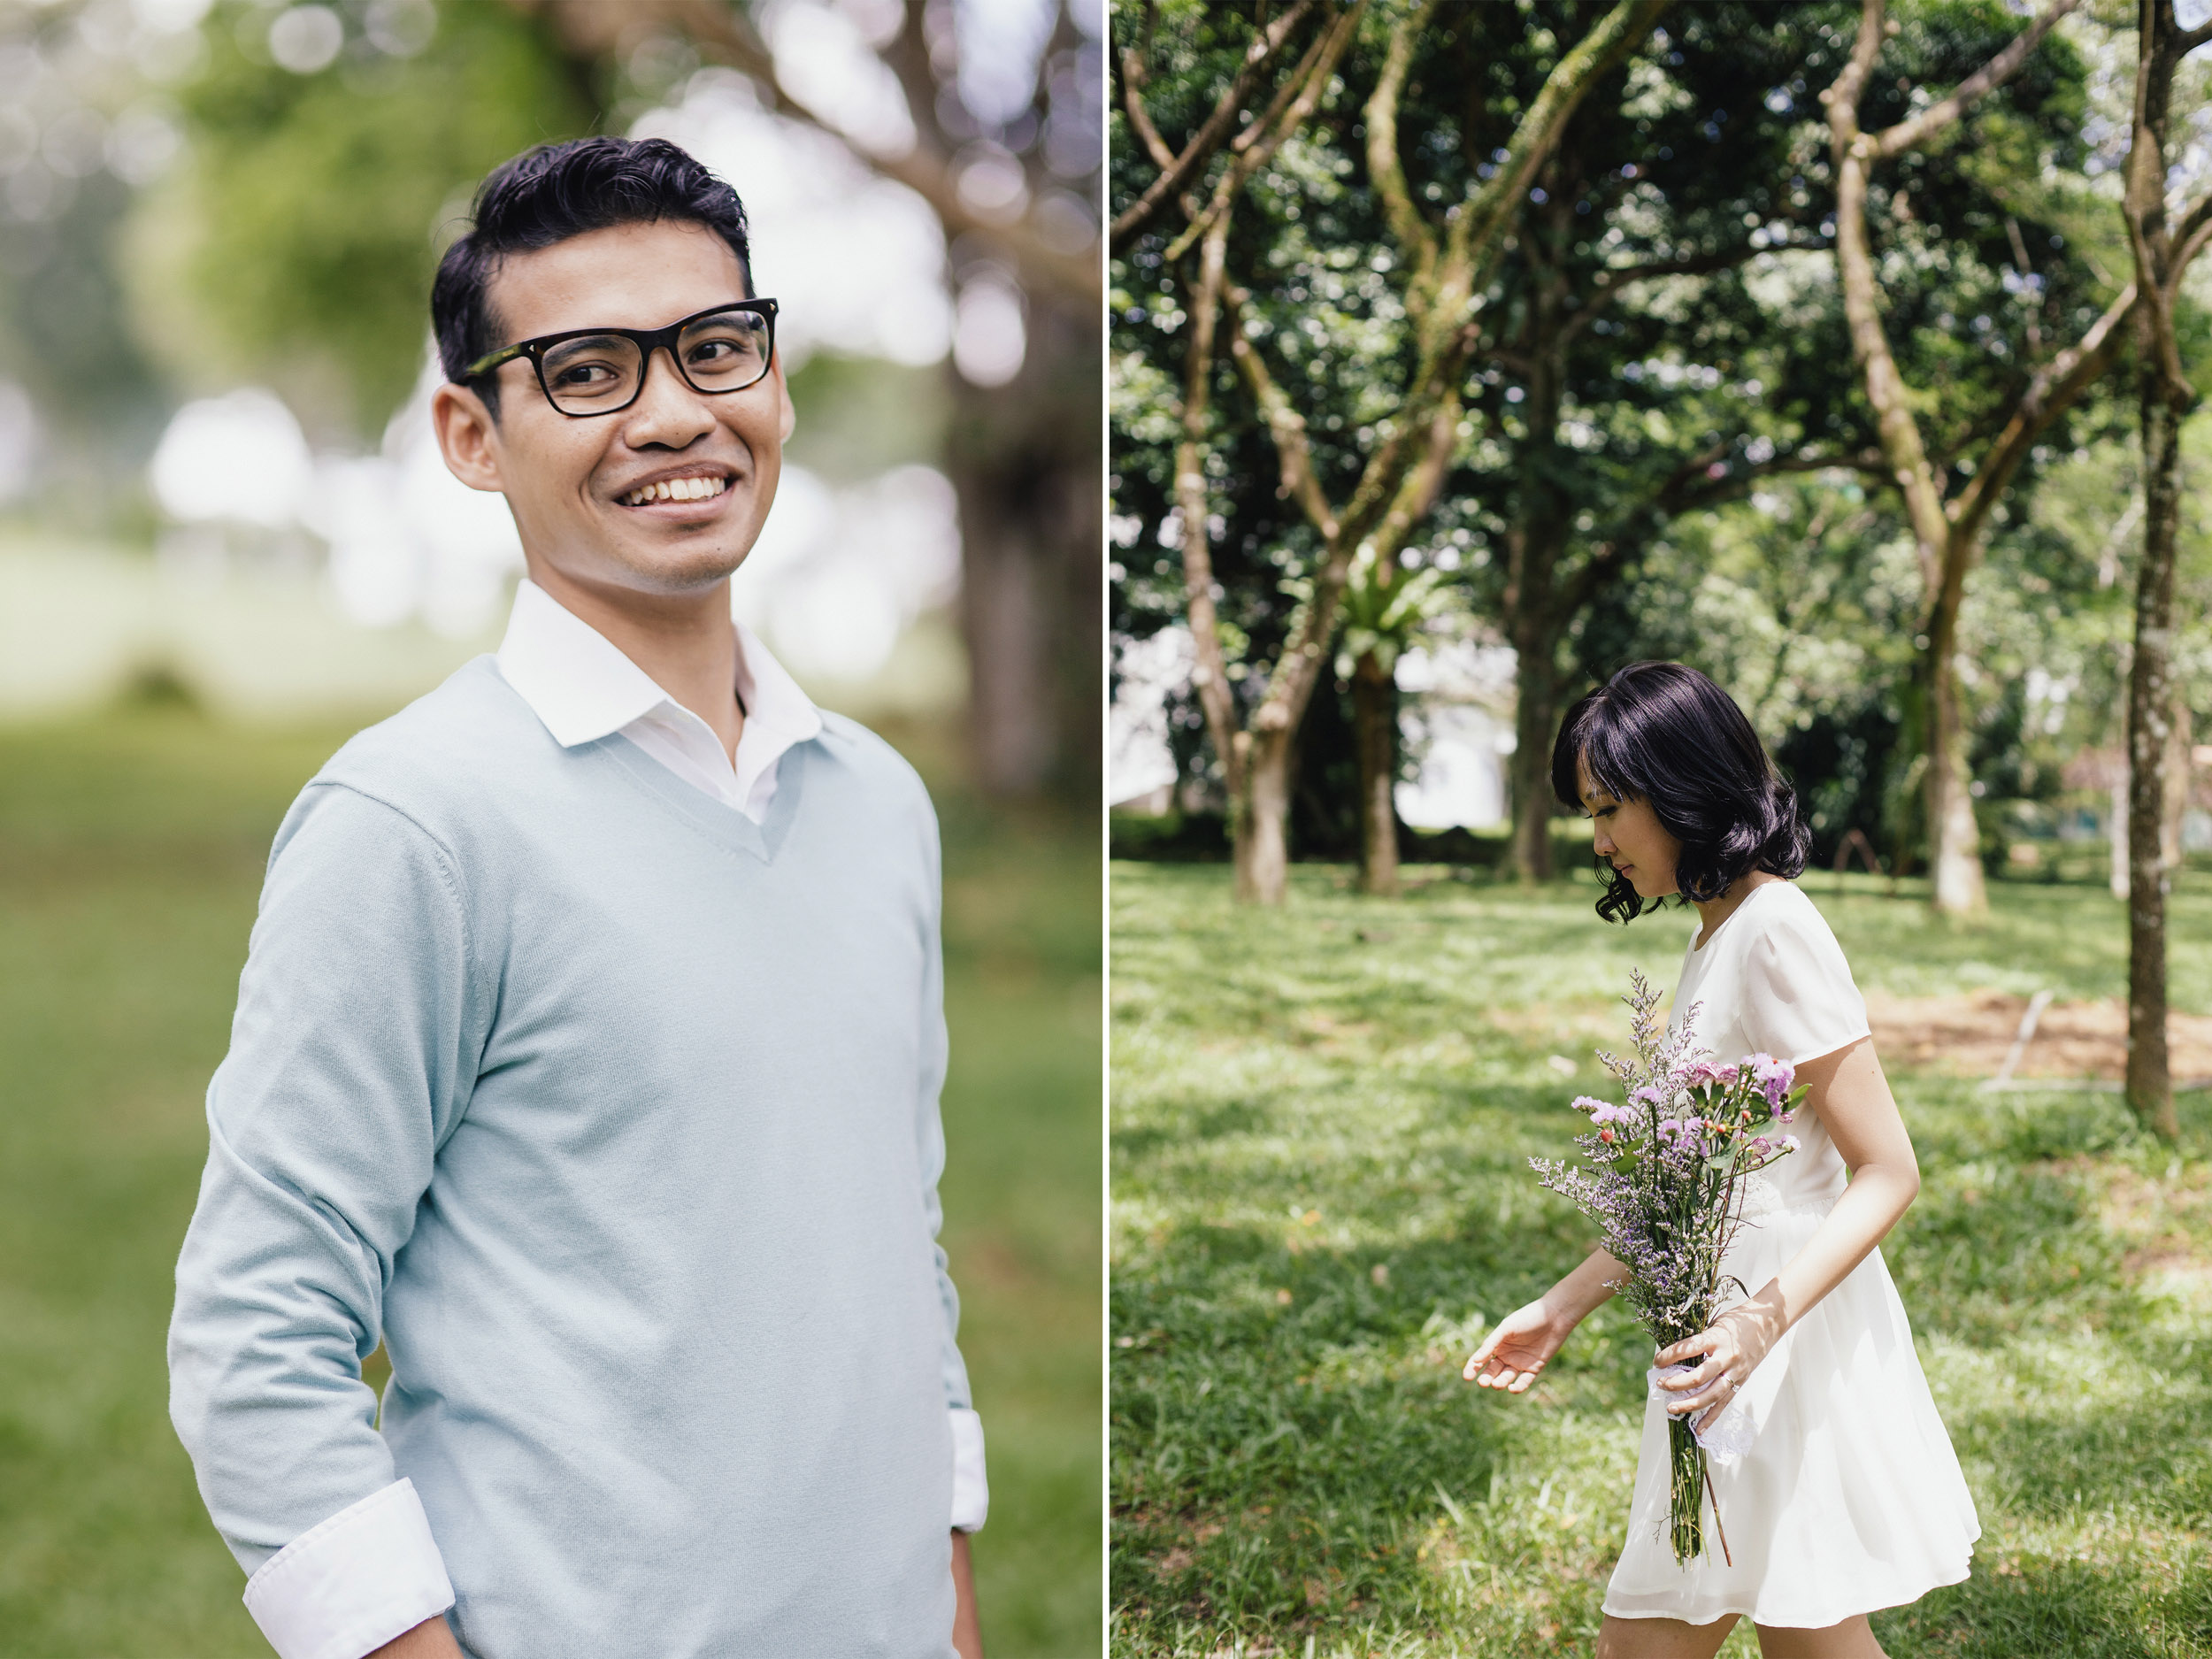 singapore-wedding-photographer-wemadethese-adib-mizah-2012-sessions-008.jpg